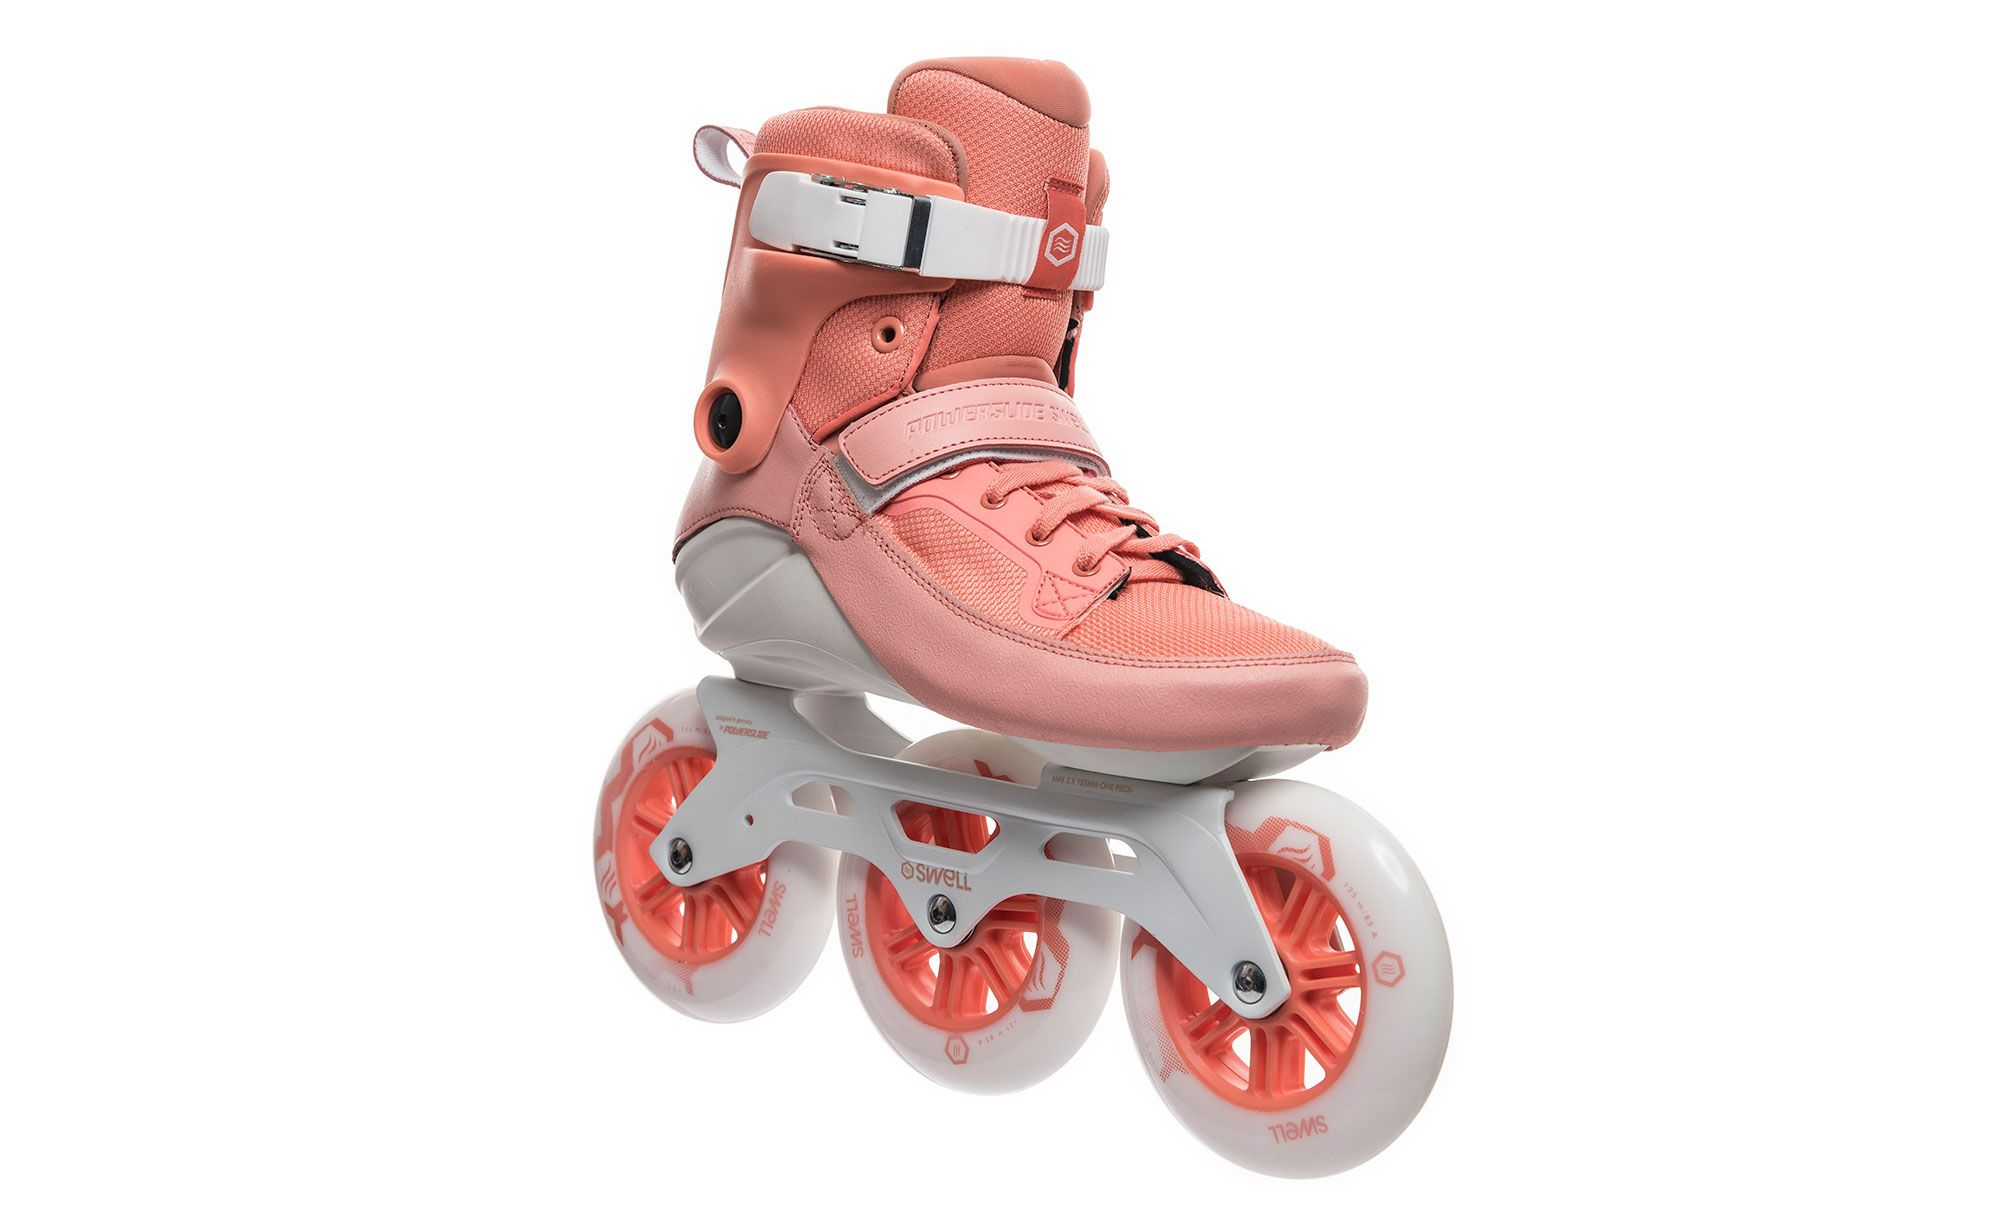 Powerslide Swell Fitness Inline Skates Inline Skating Air Max Sneakers Nike Air Max